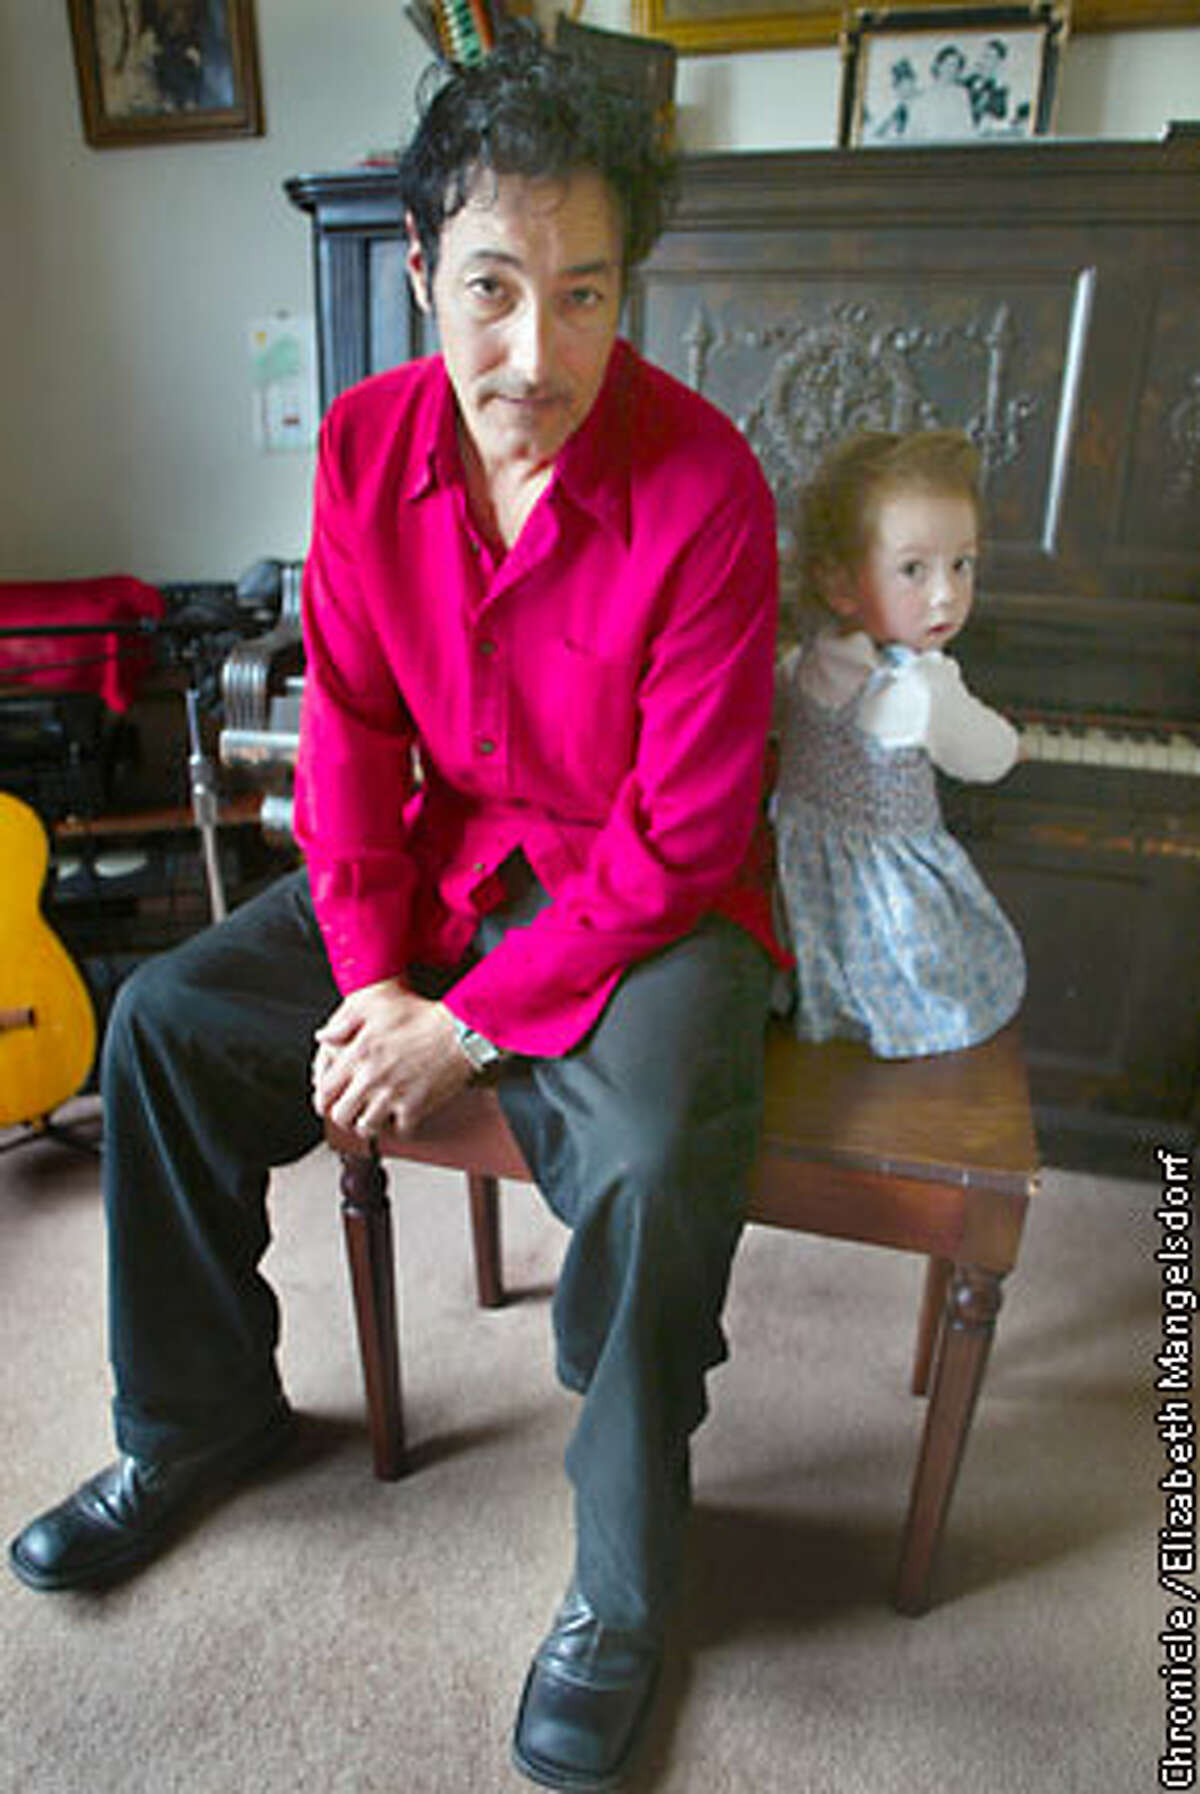 Songwriter Jesse DeNatale and his 2-year-old daughter Lucinda in their San Francisco living room. Chronicle photo by Elizabeth Mangelsdorf